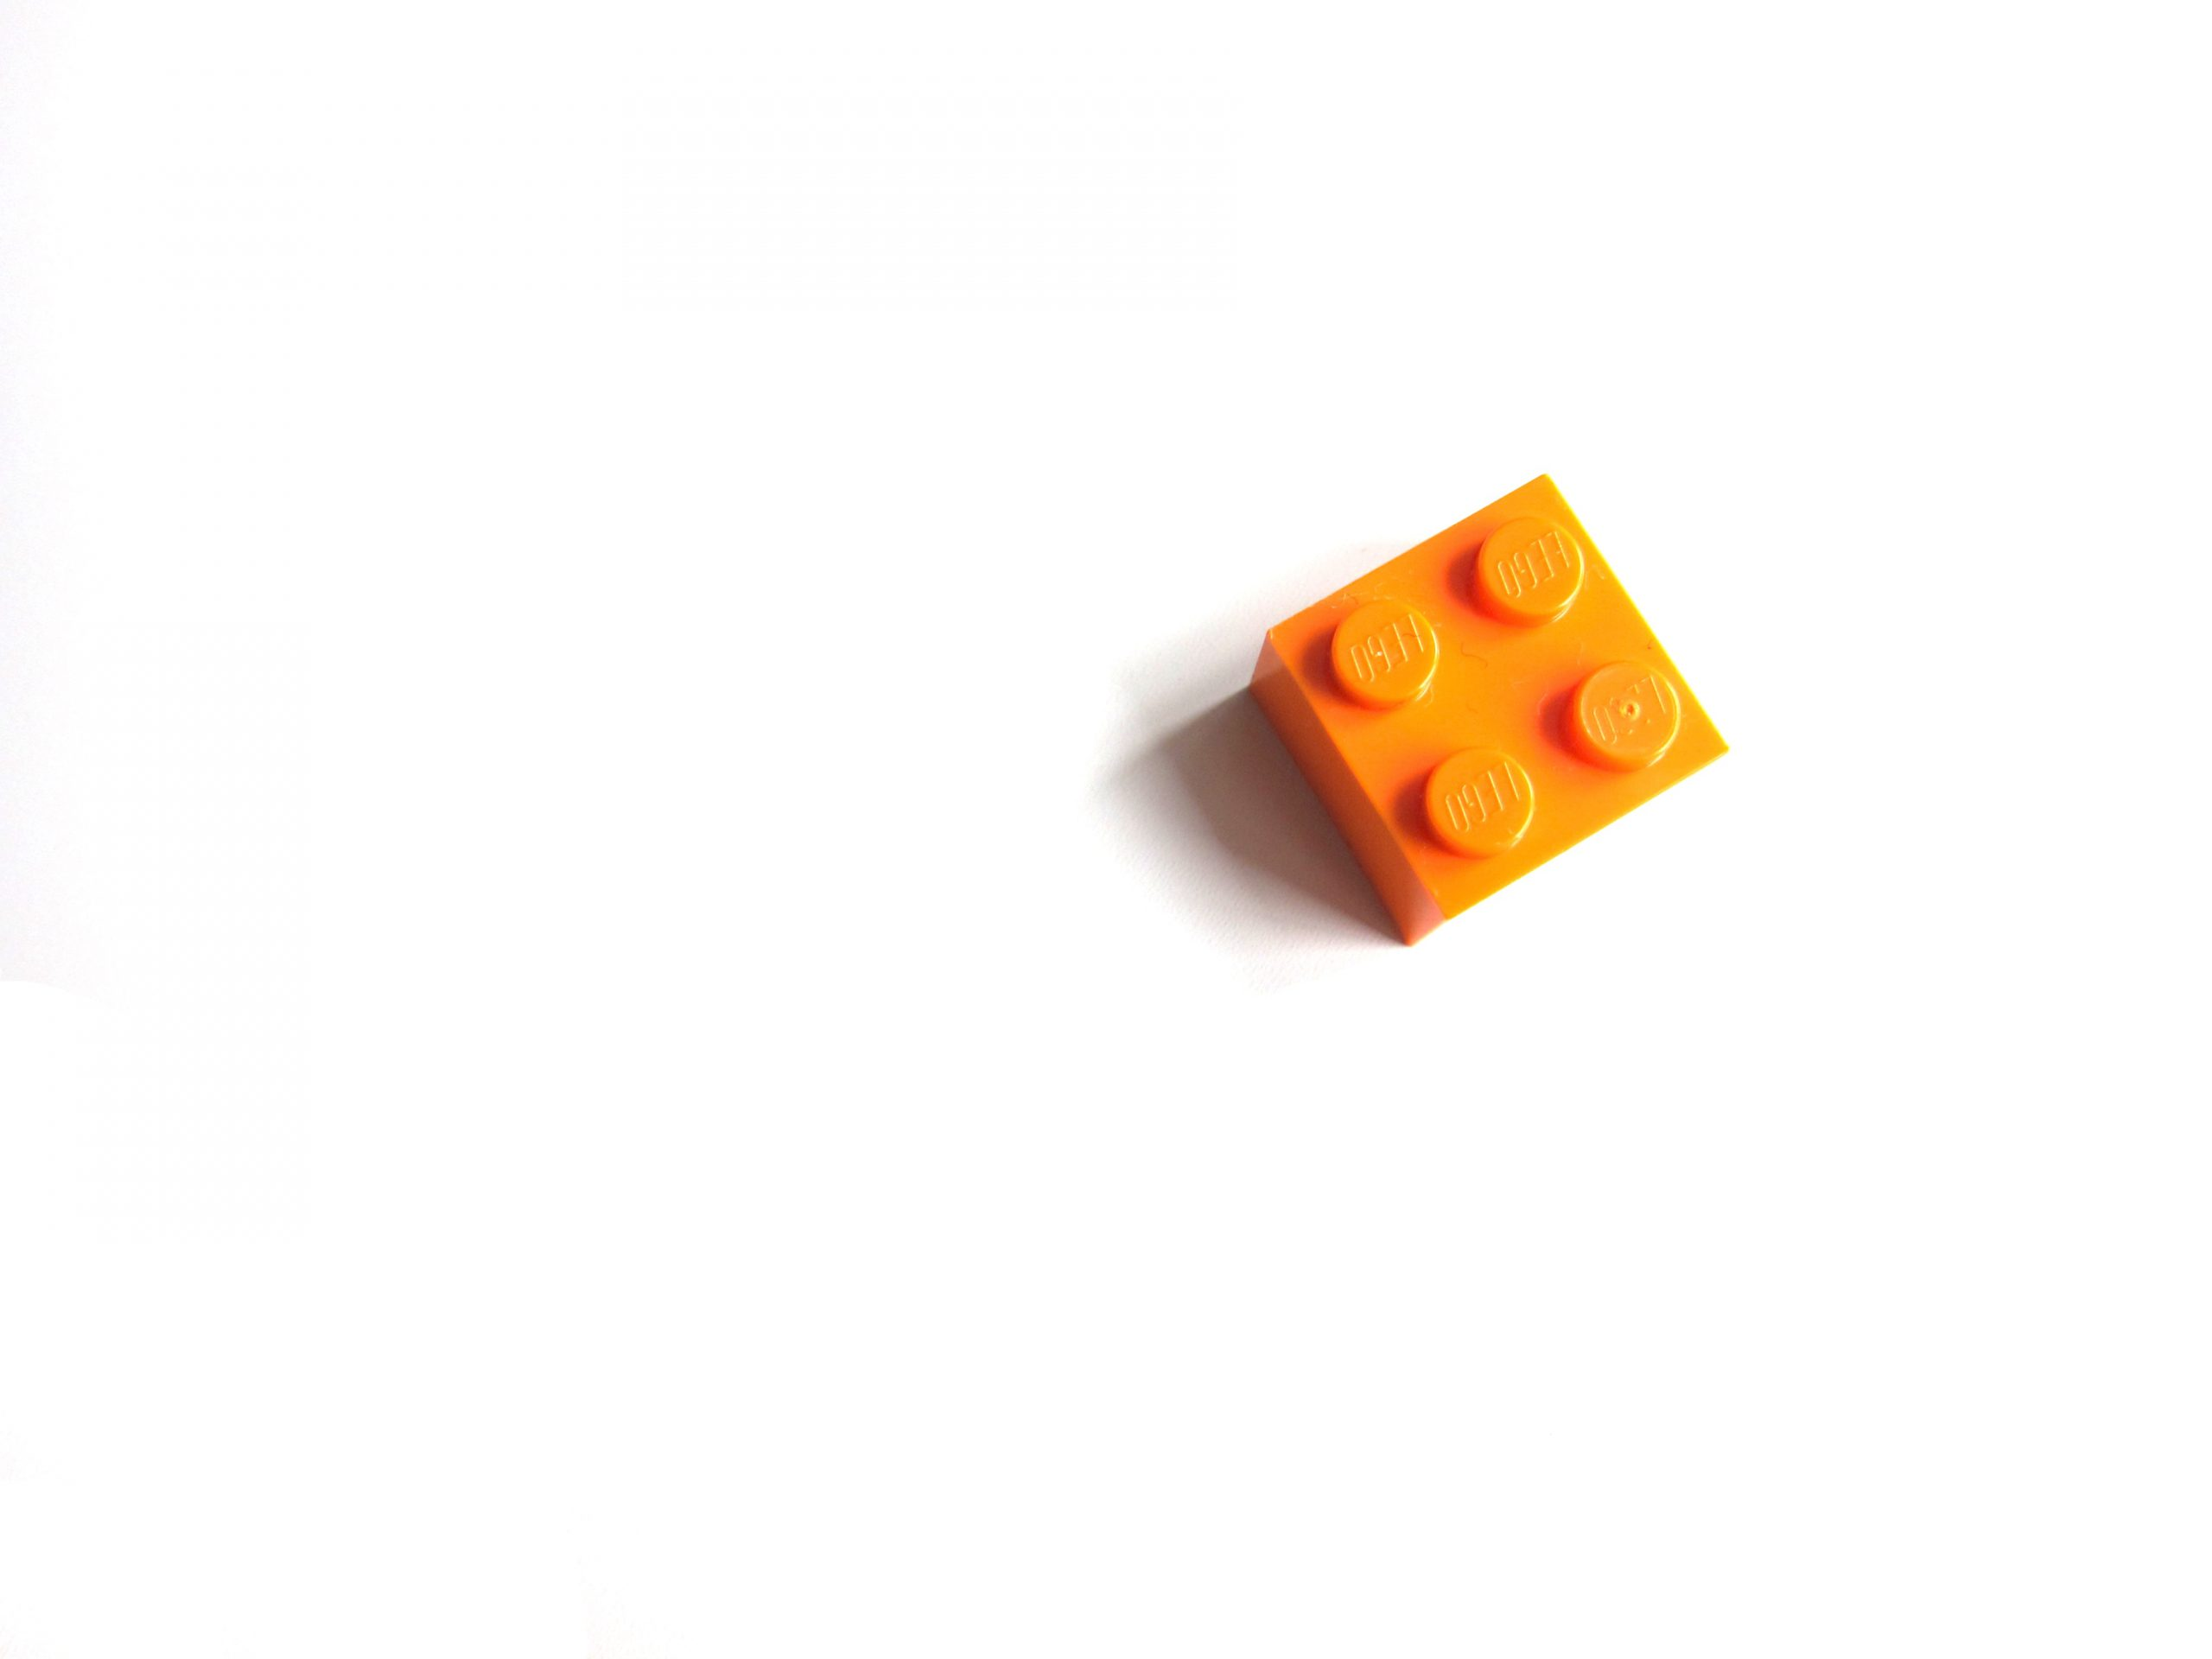 orange mega blocks toy on white surface